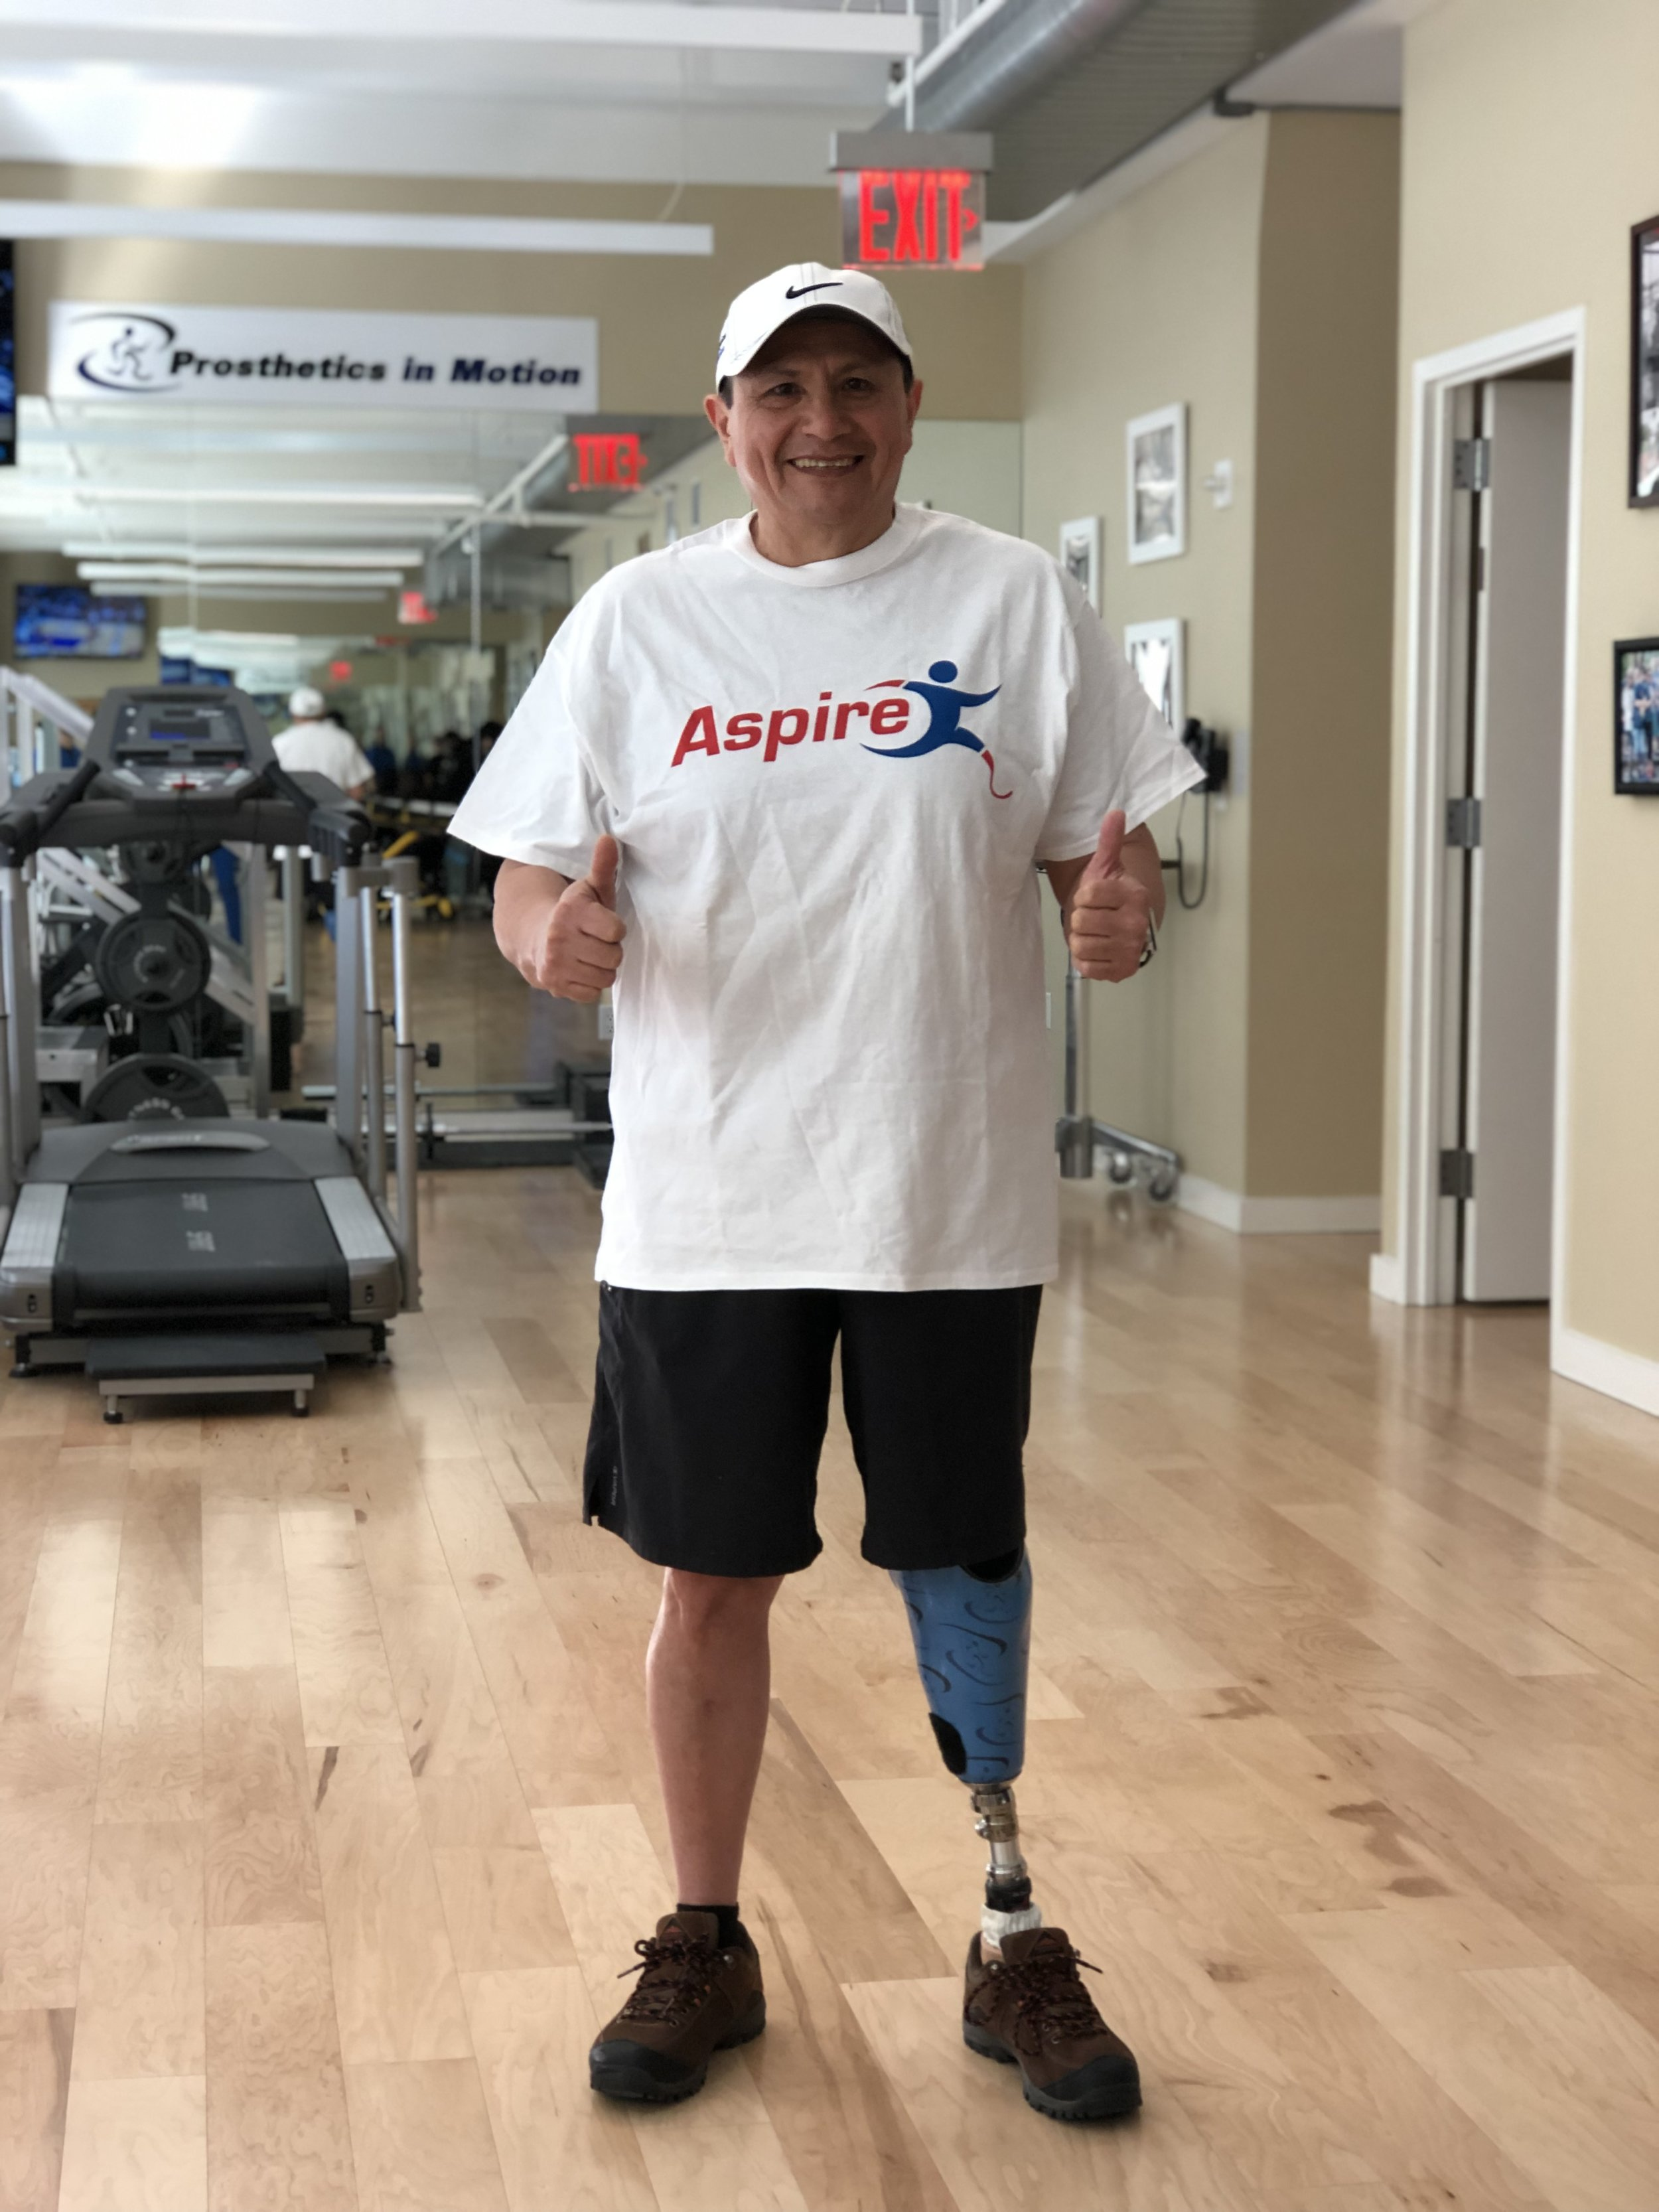 Ricardo - In 1982 Ricardo lost his left leg below the knee in a motorcycle accident. Since then Ricardo became more involved in wheelchair racing and to date has competed in 63 Marathons, 22 triathlons and 4 Ironman Triathlons.